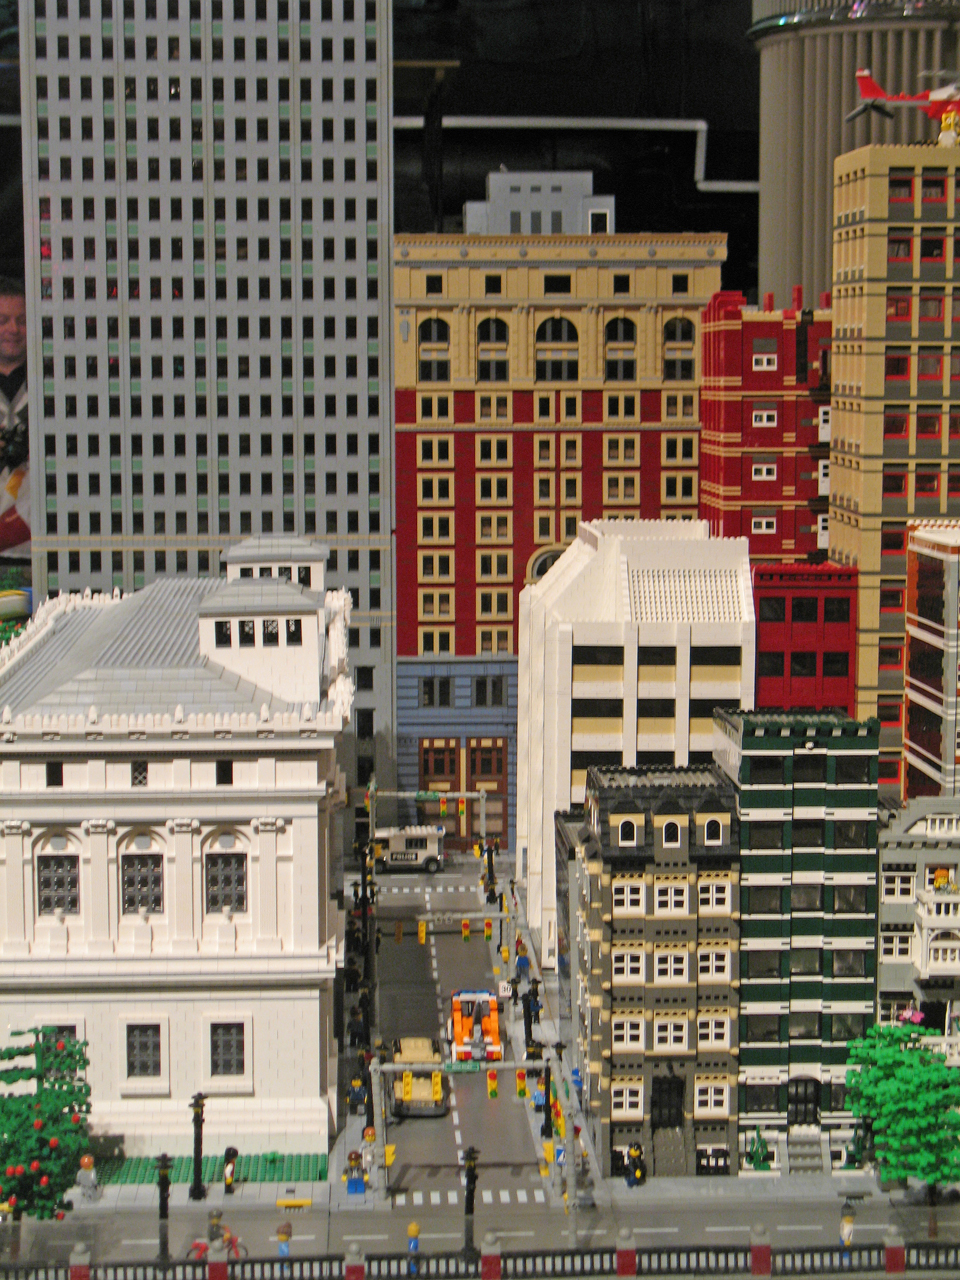 MichLTC Lego City and Train Layout at The Henry Ford Museum